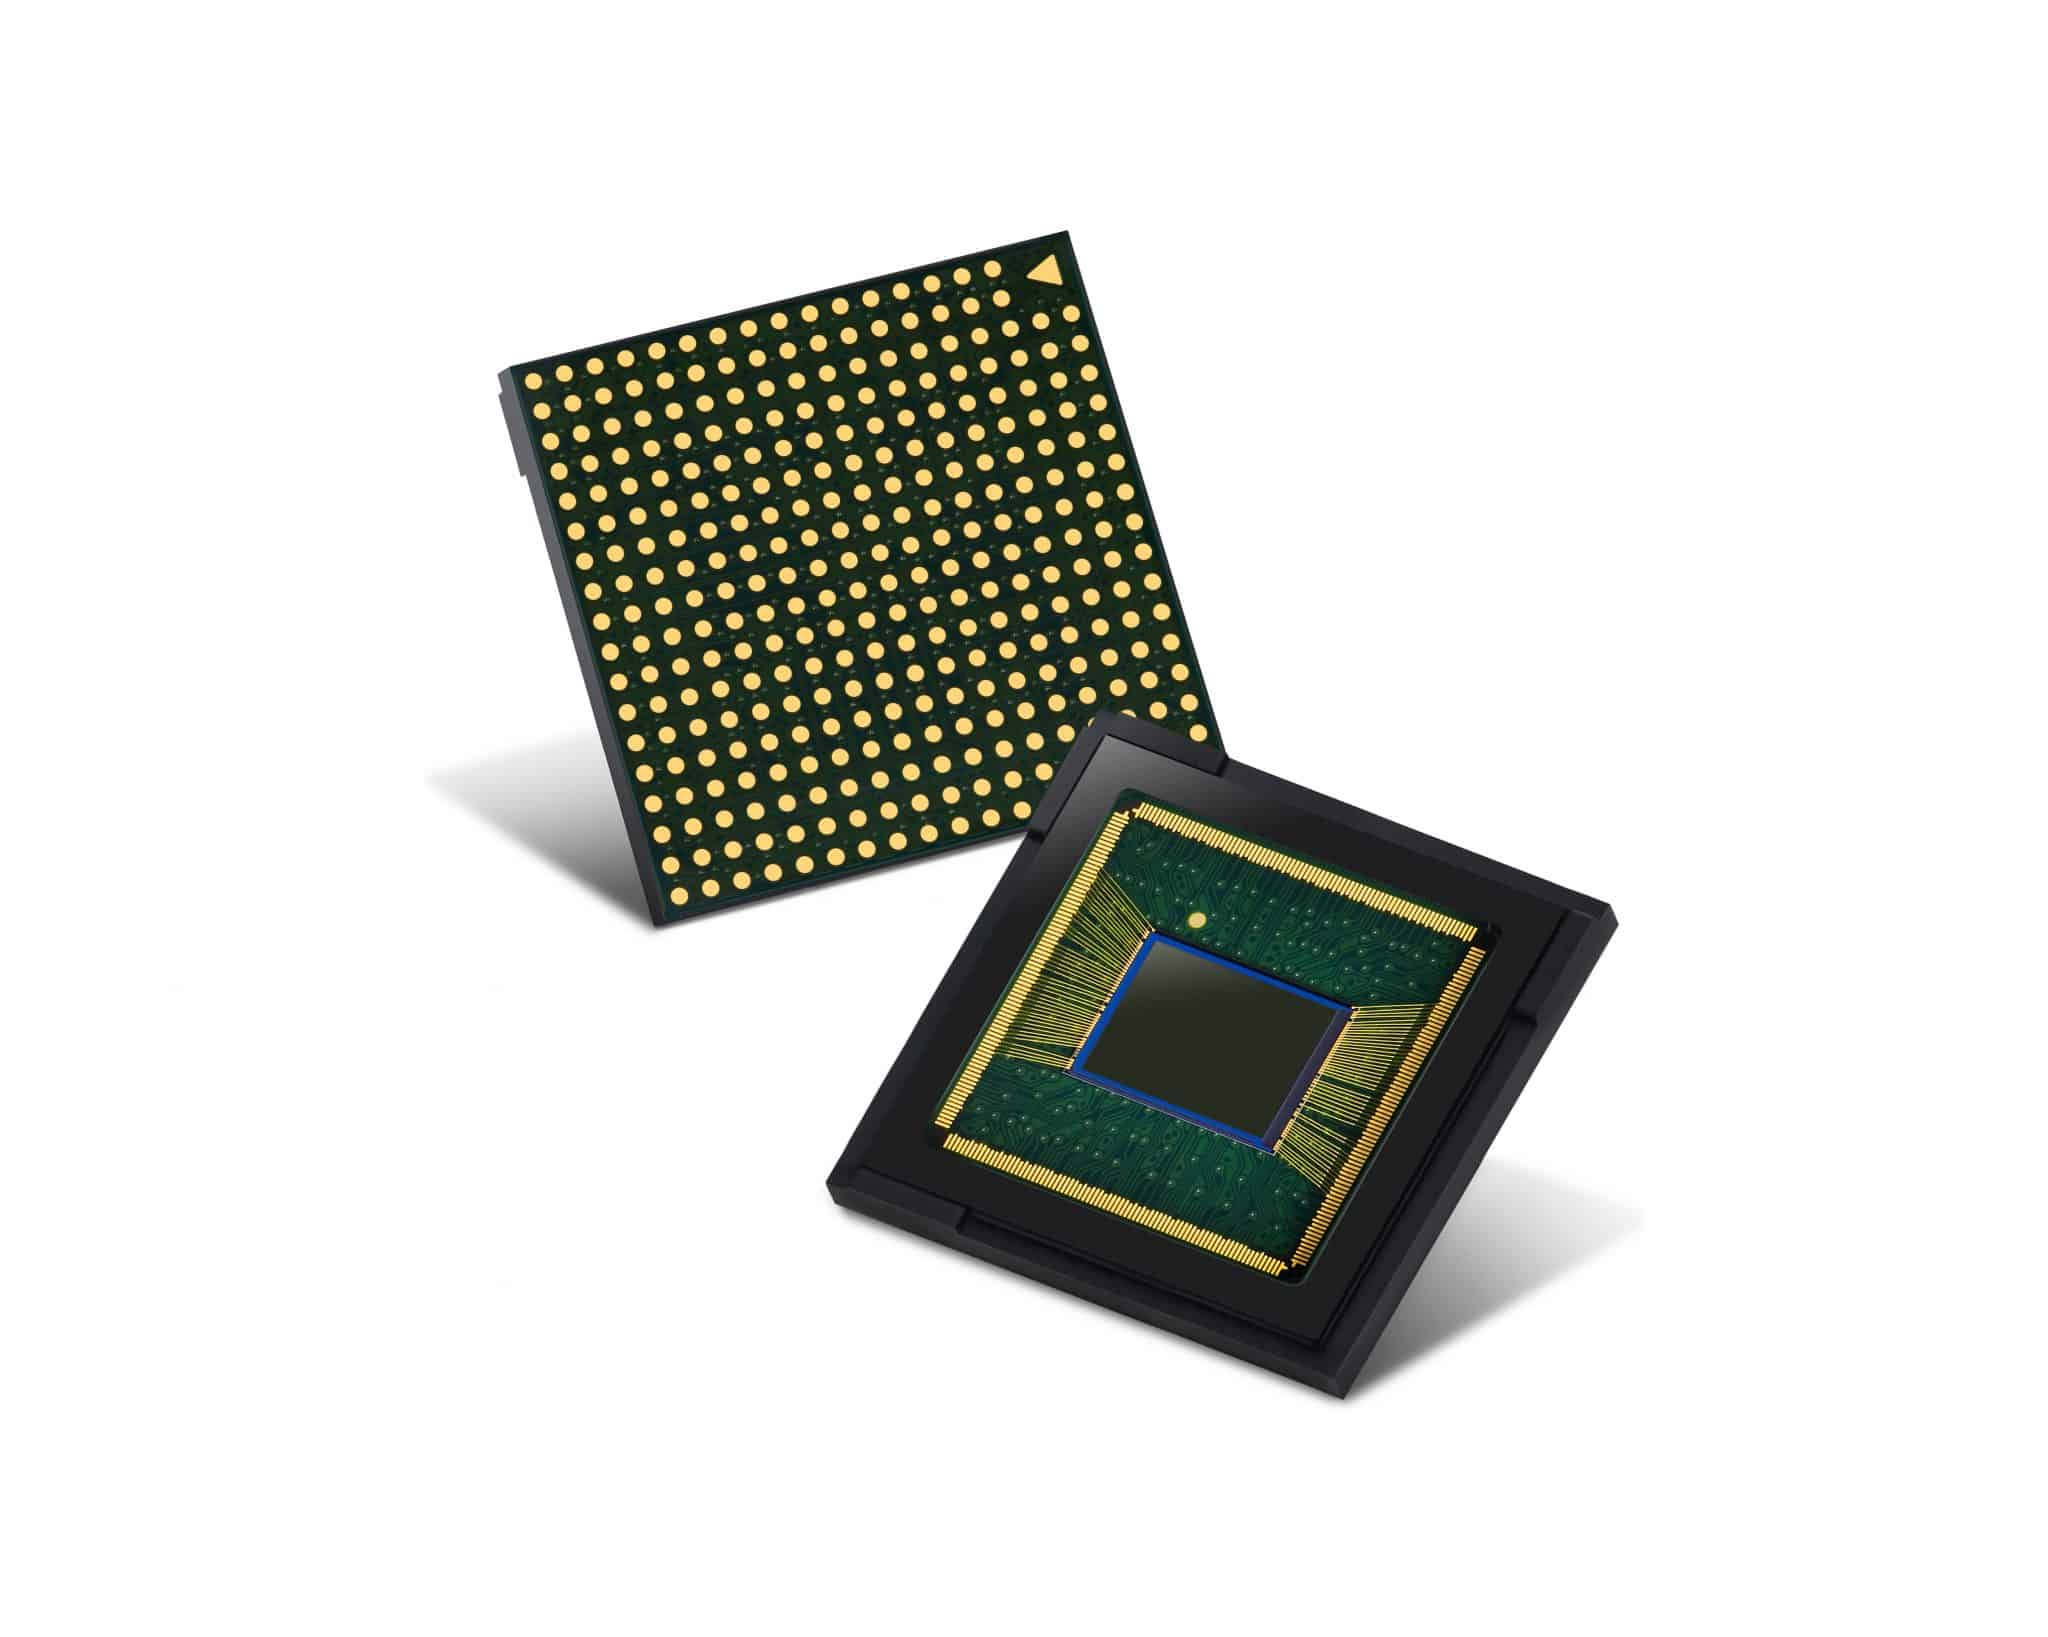 Samsung ISOCELL Bright GW1 - 64-megapixel